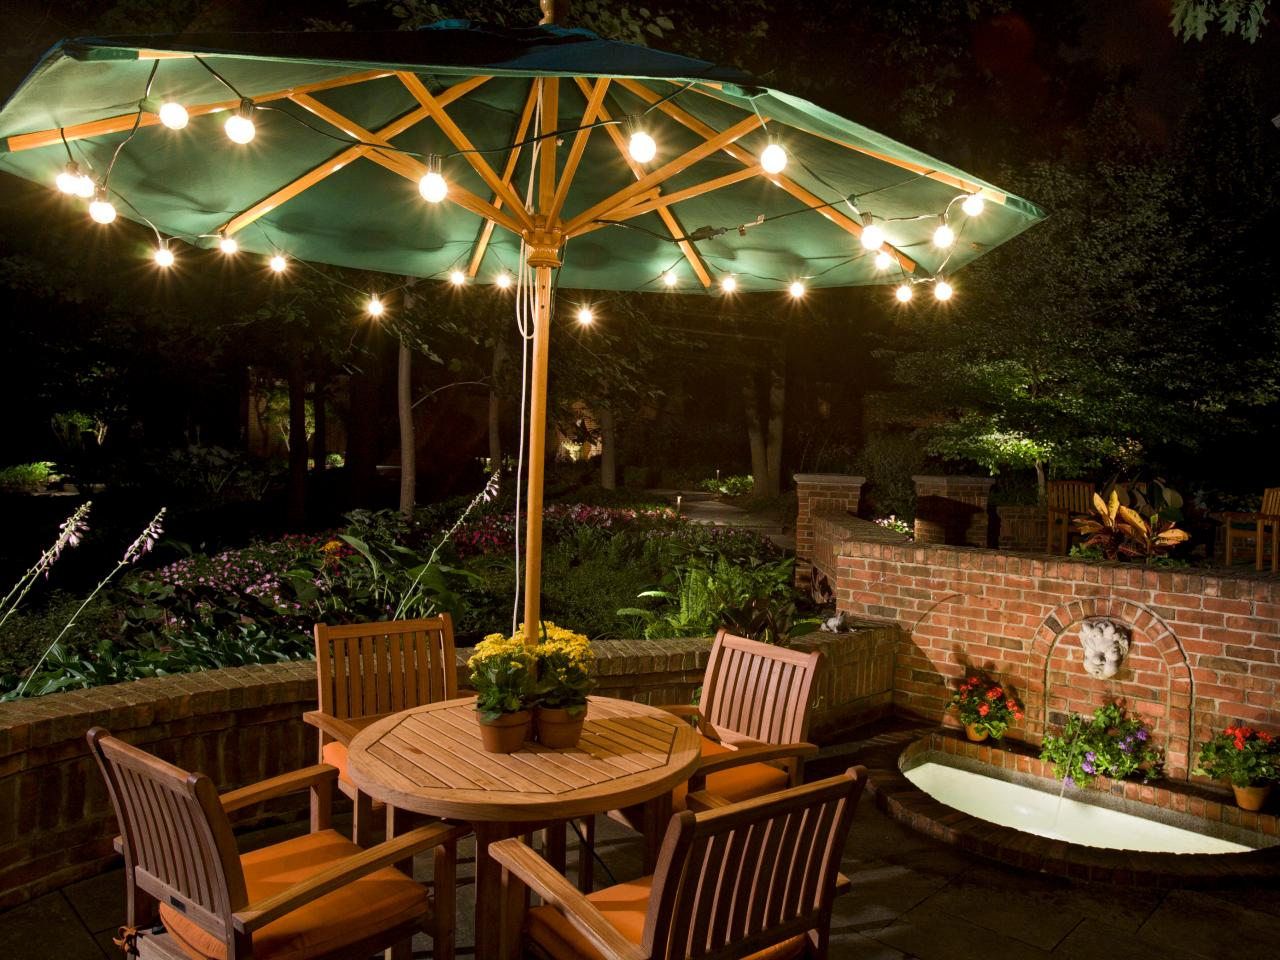 Outdoor Lighting Ideas and Options | HGTV